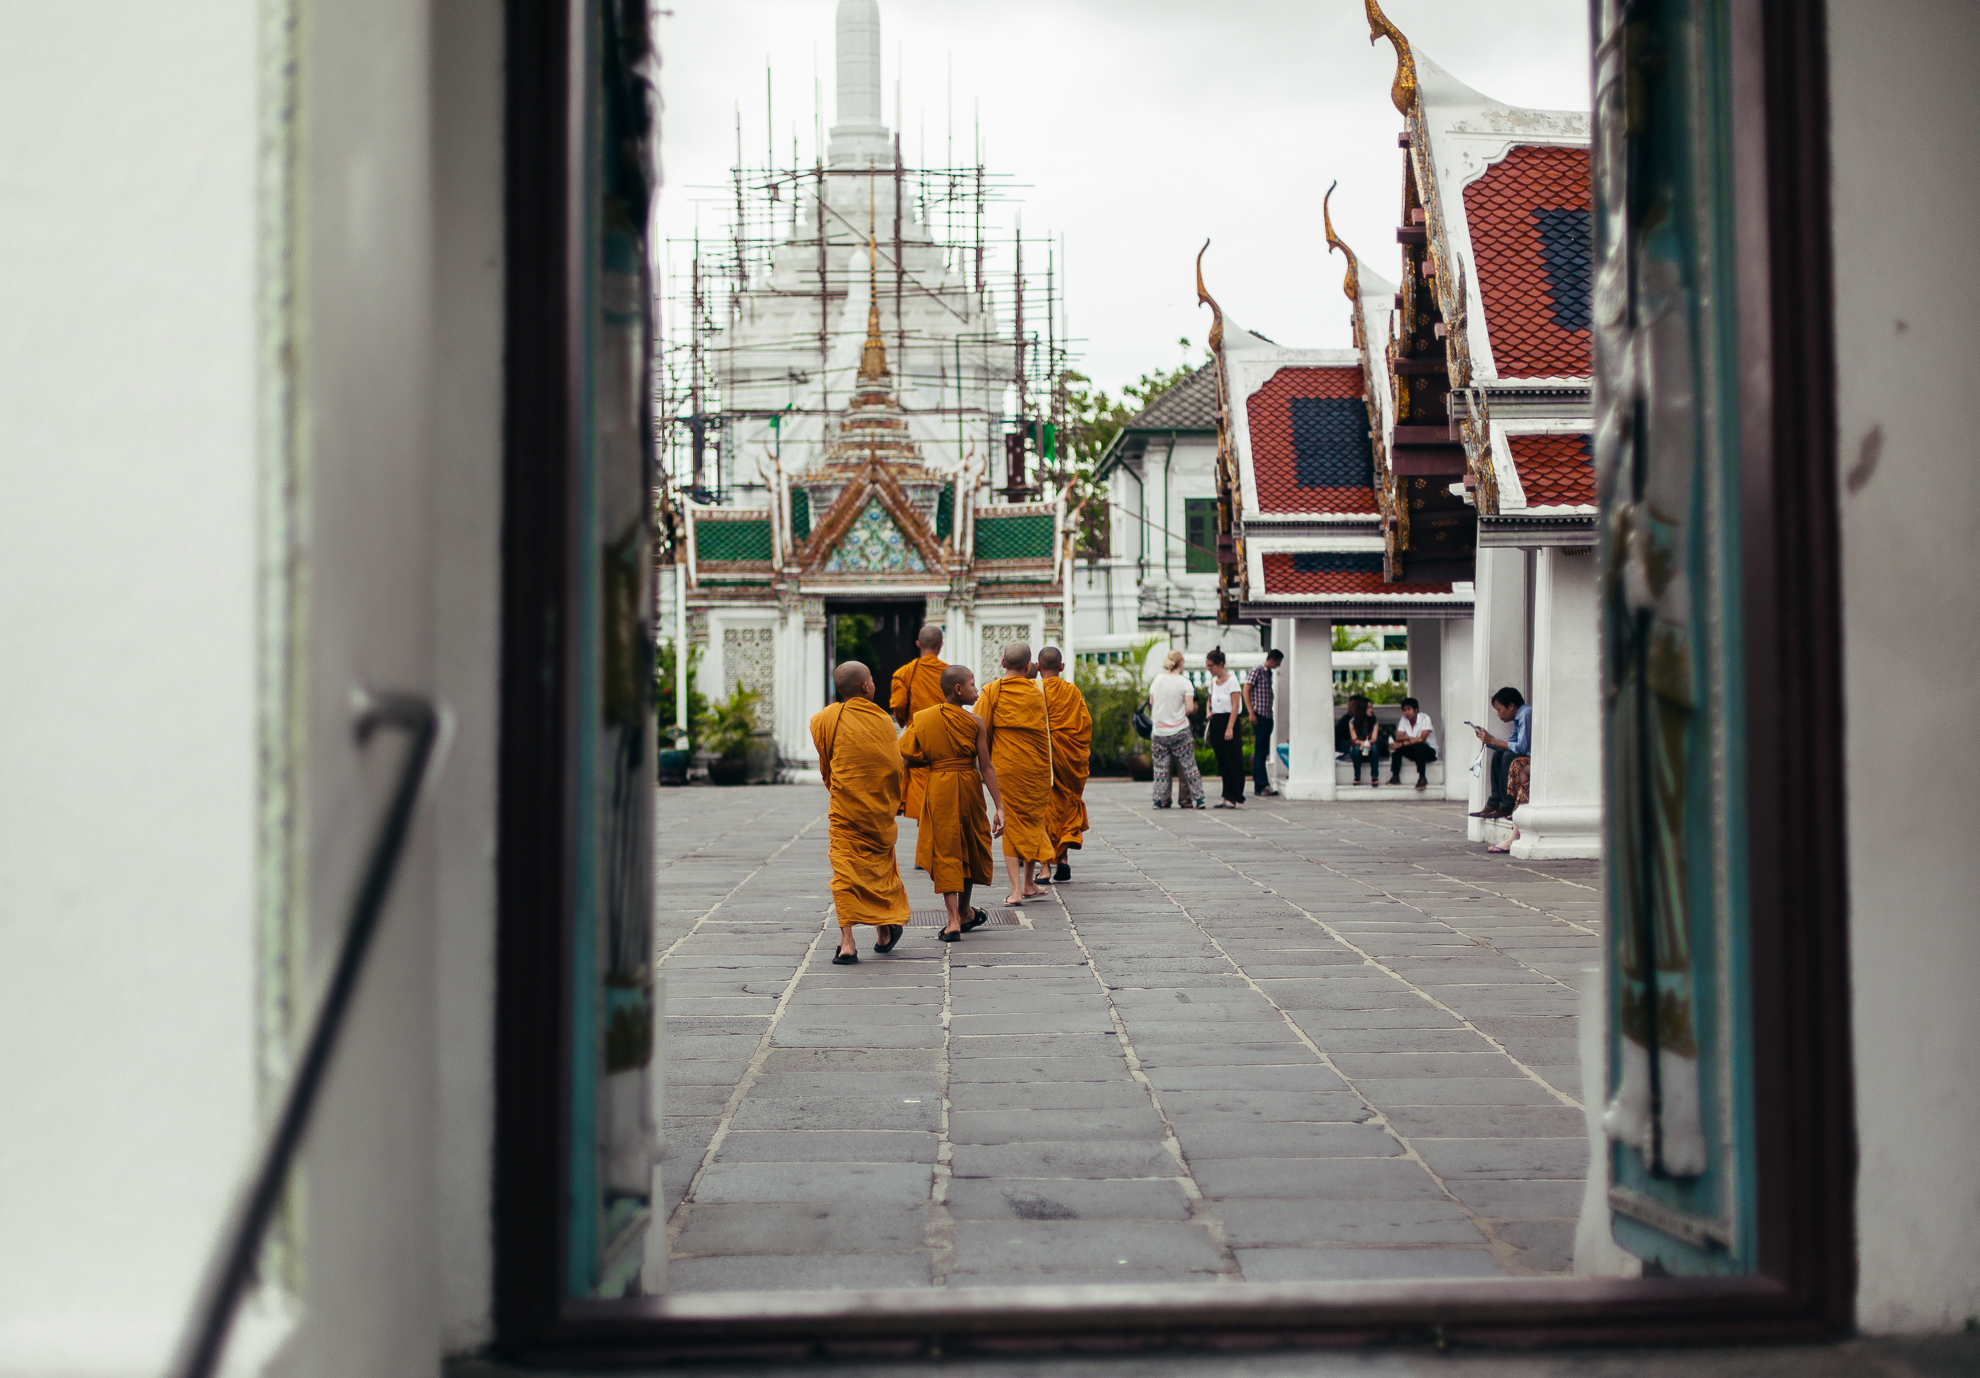 A photo of monks walking away from behind